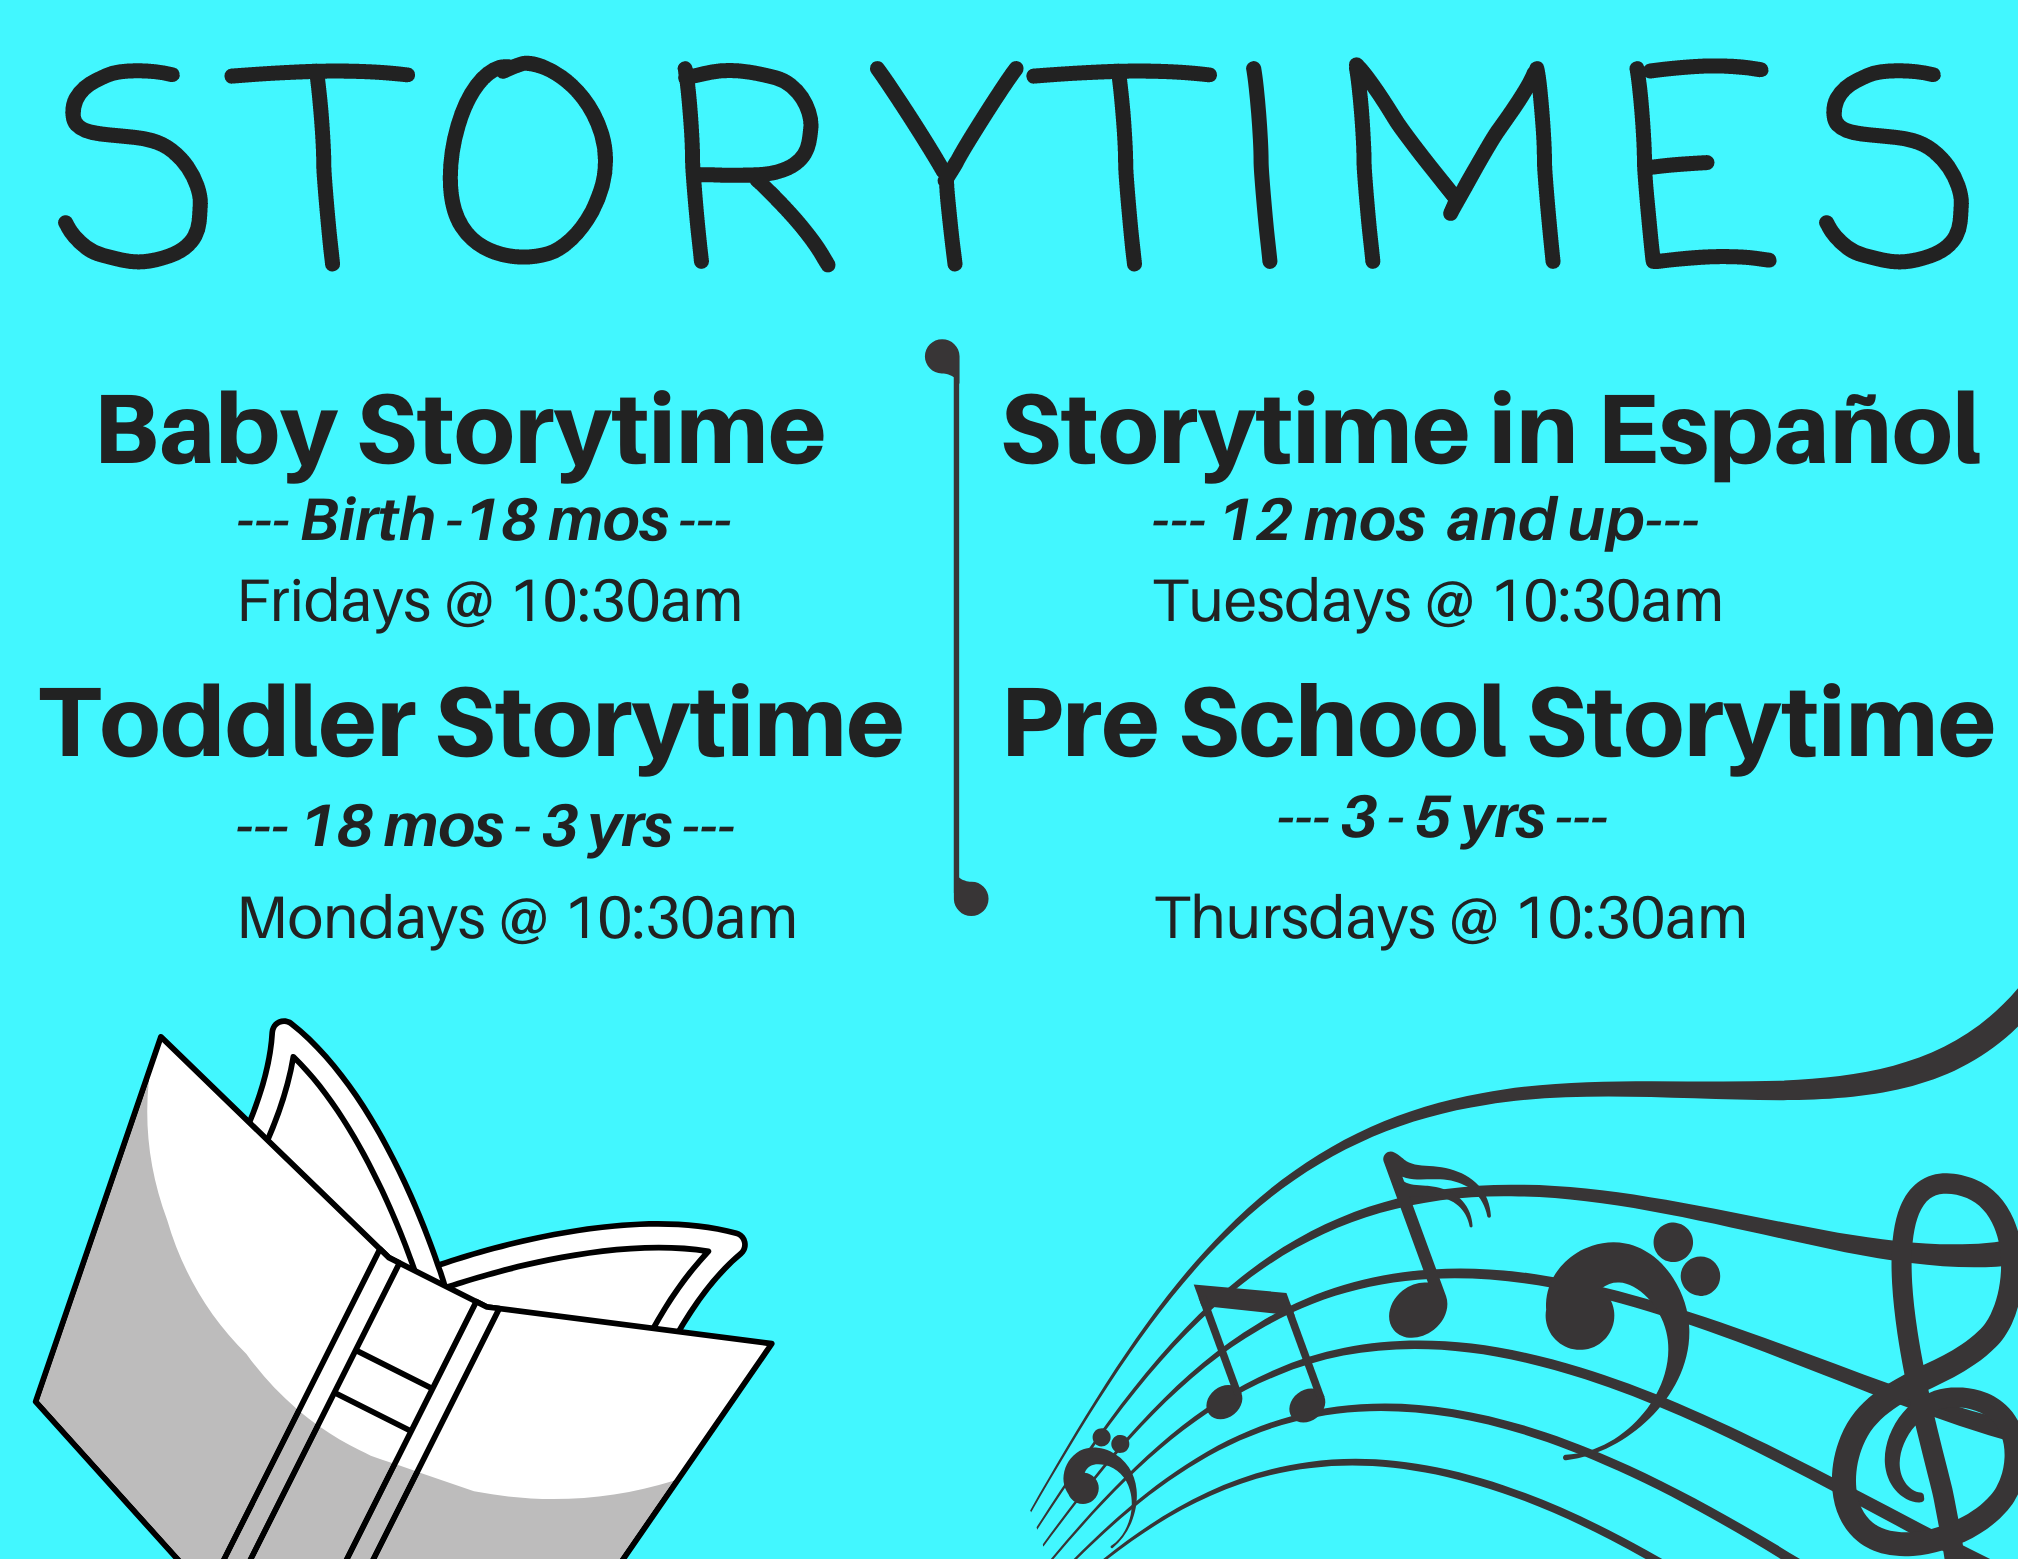 CANCELLED: Baby Storytime